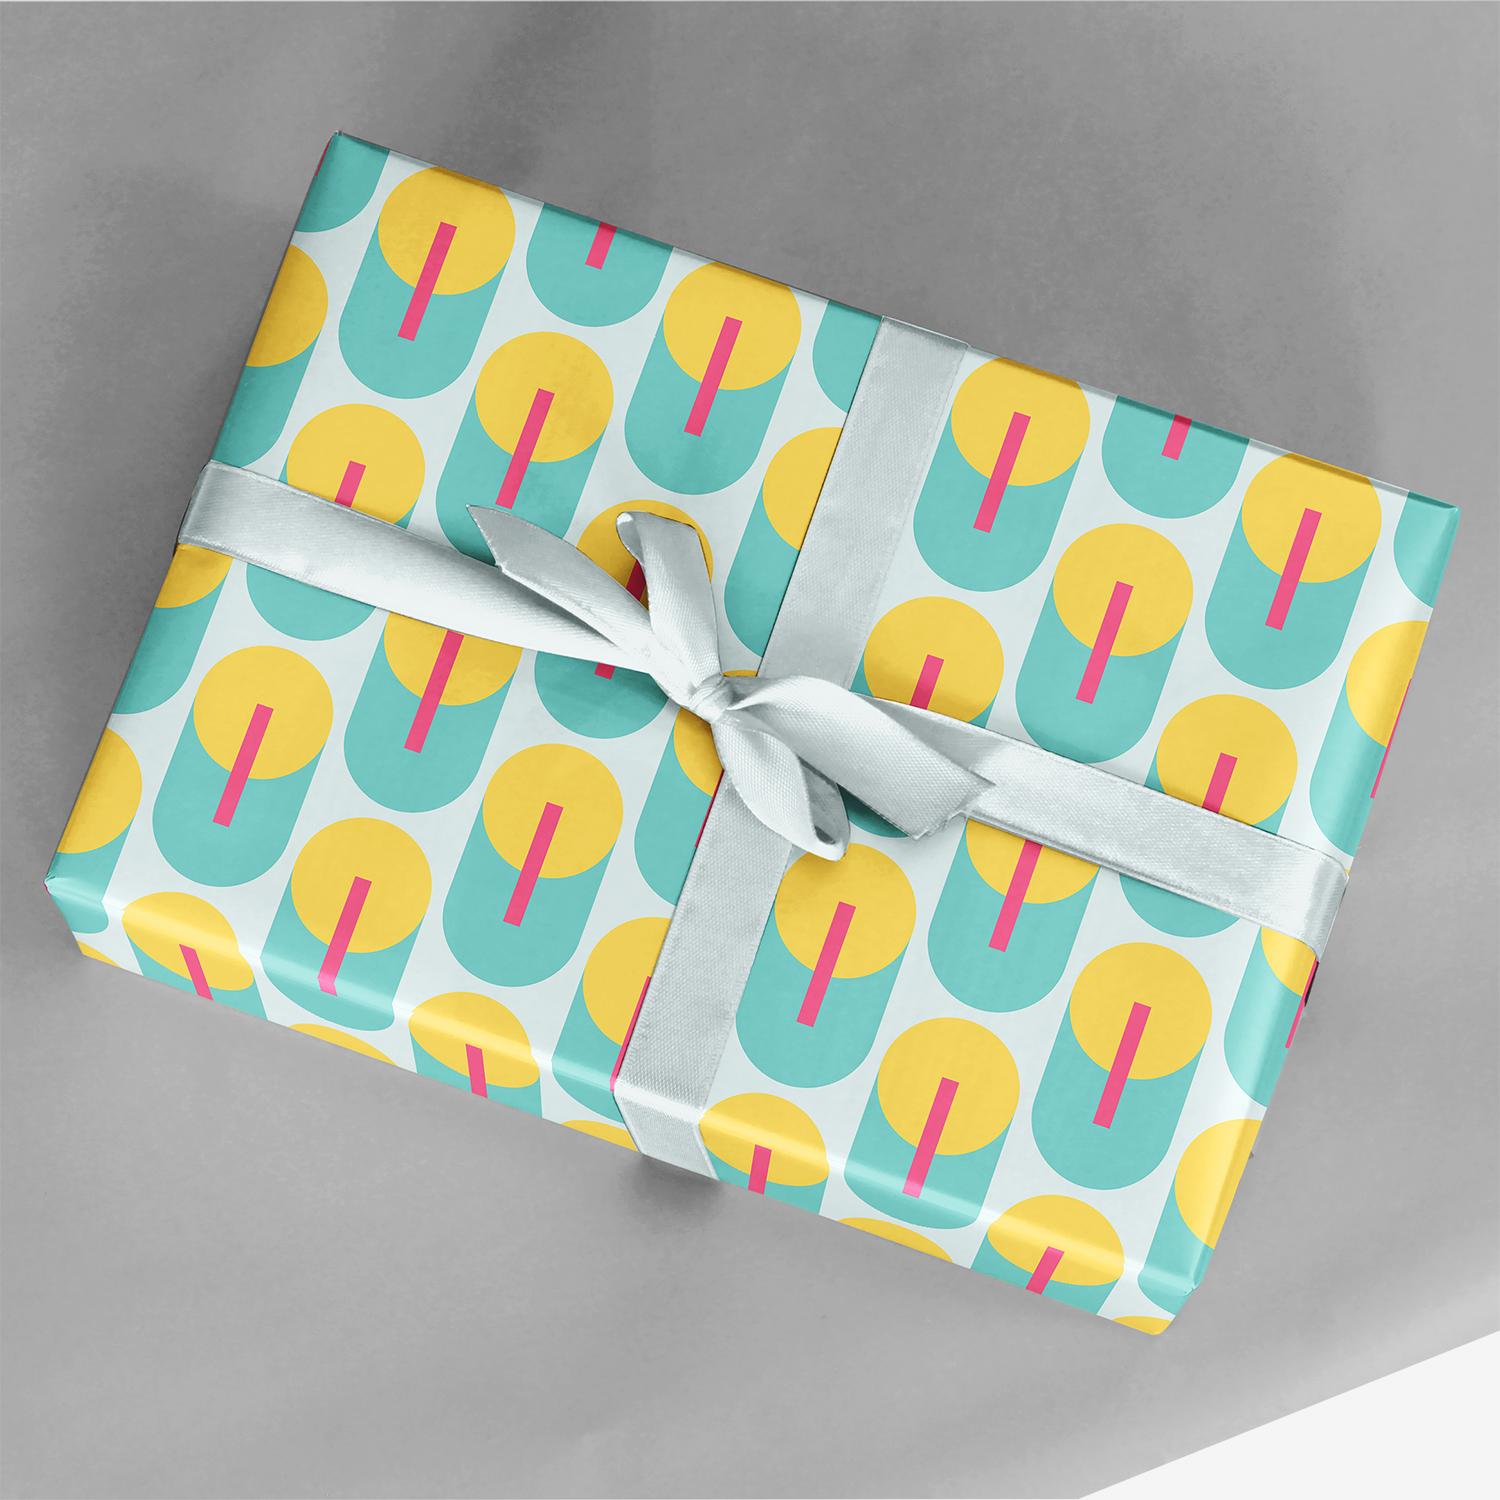 gift wrapped in blue and yellow geometric art deco gift wrap